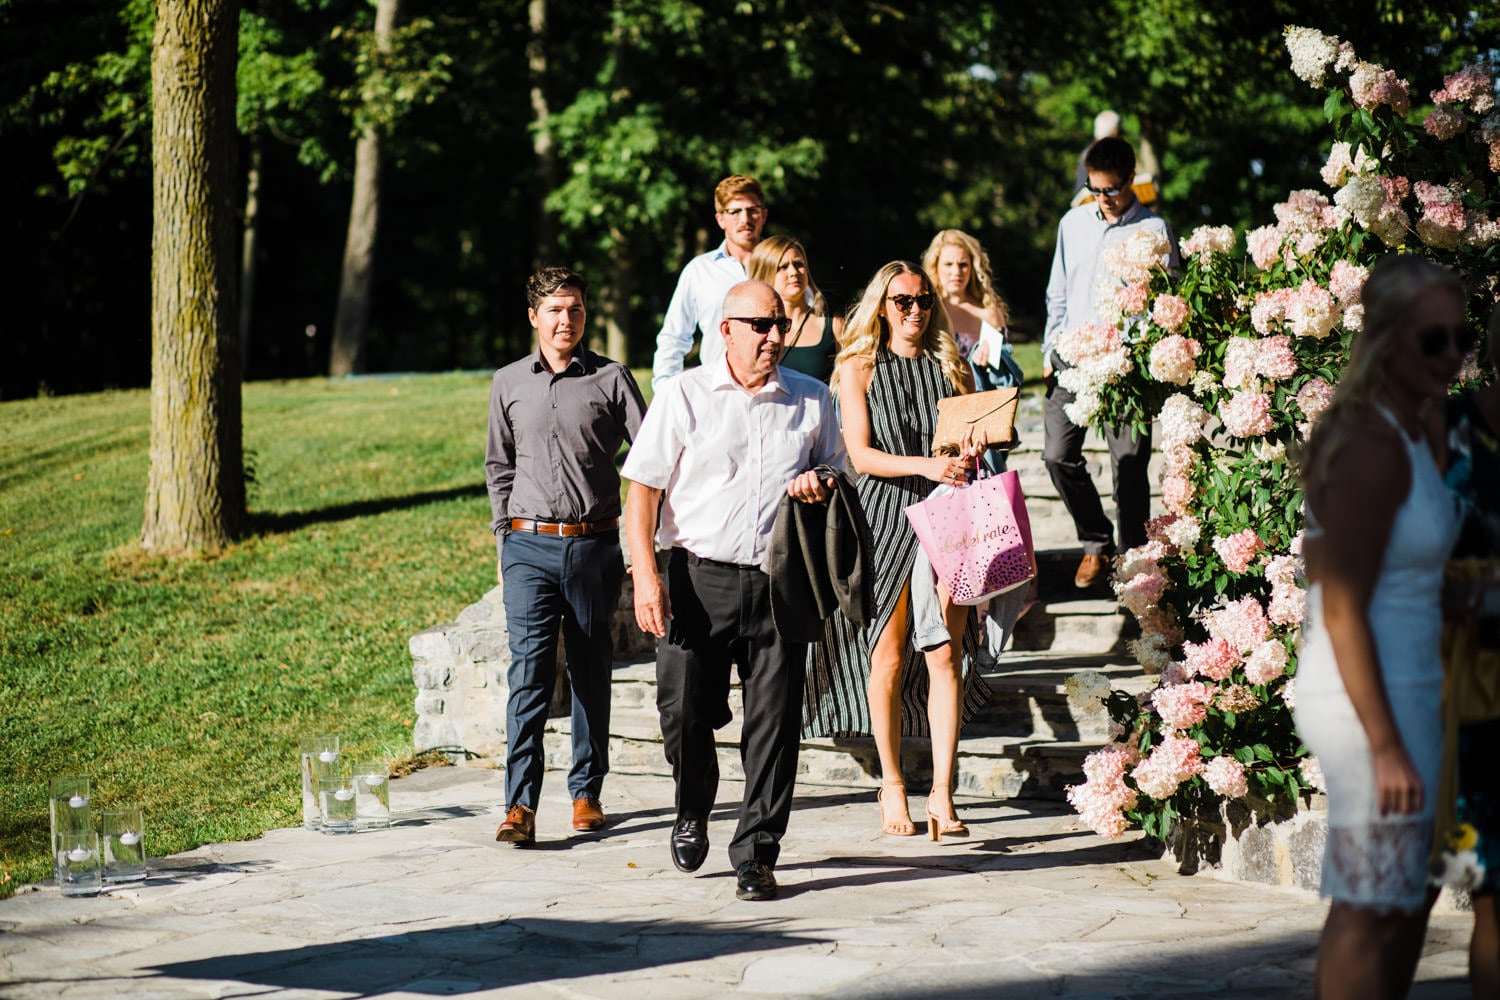 guests arrive for surprise wedding on outdoor stone patio